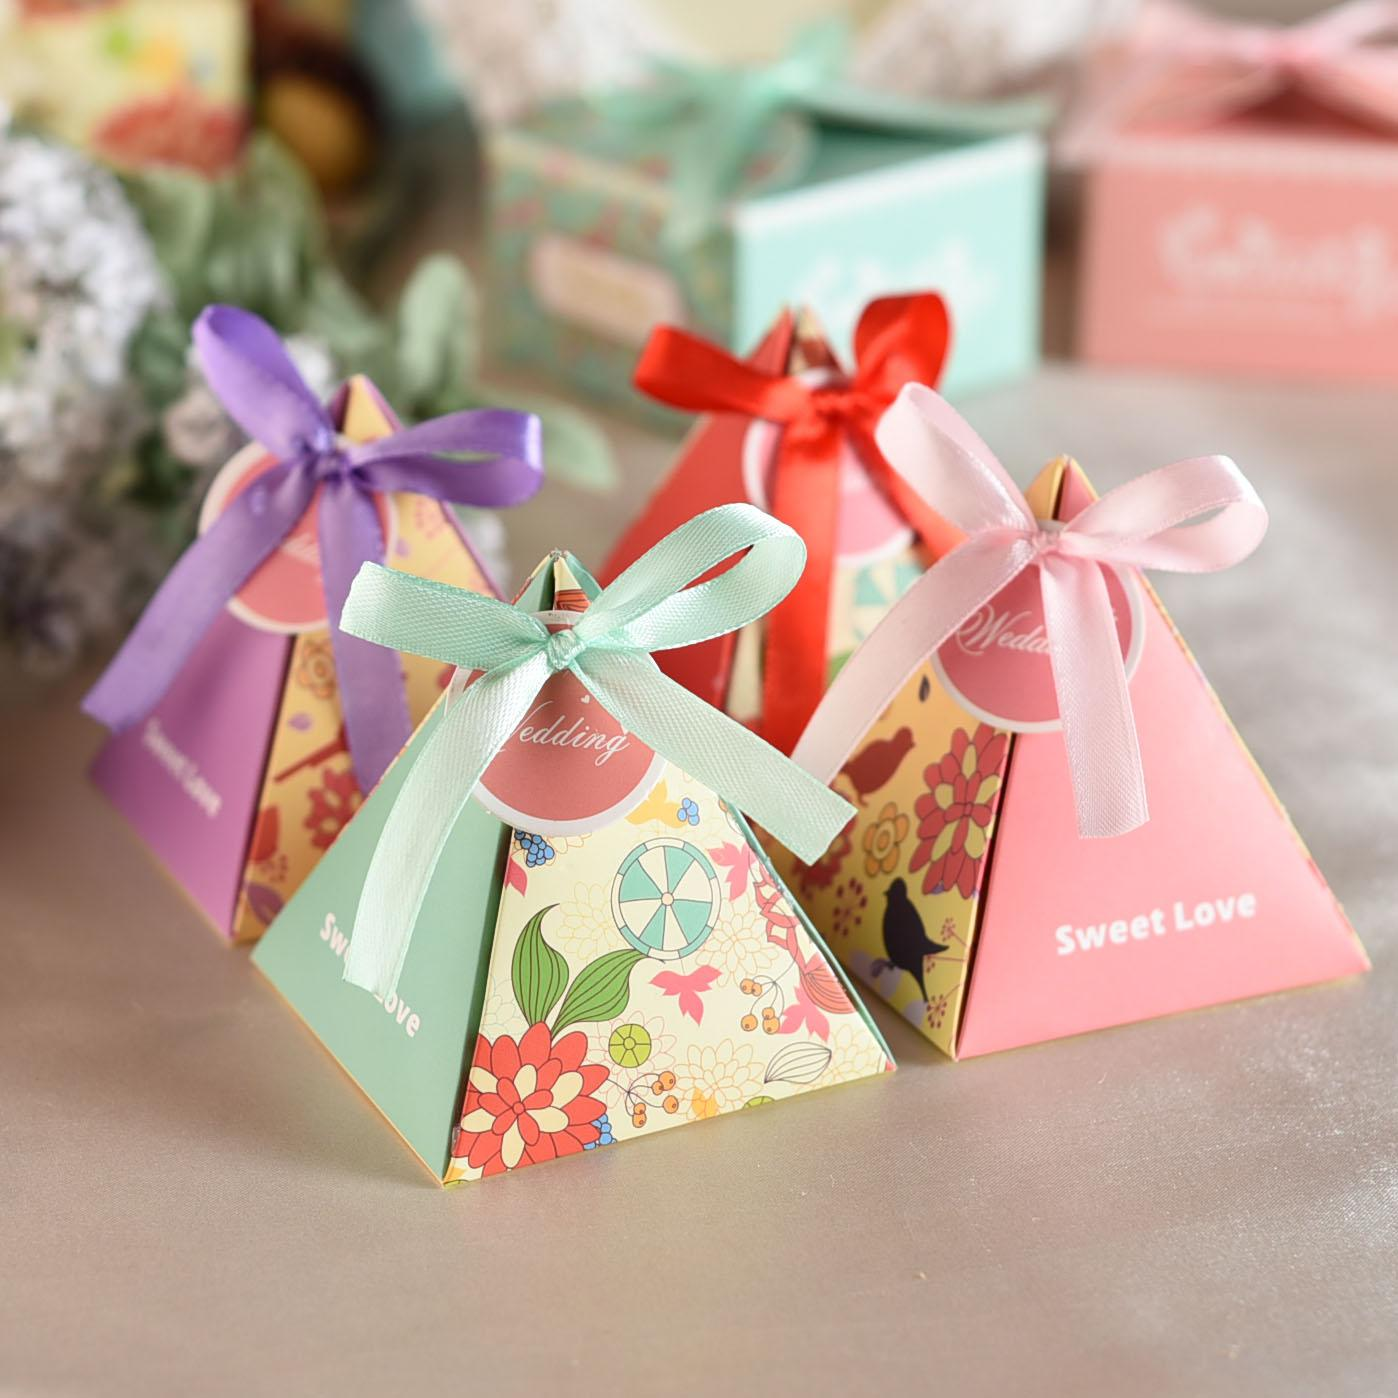 where to buy box pyramids online where can i buy box pyramids cheap favor boxes favors best paper triangle party